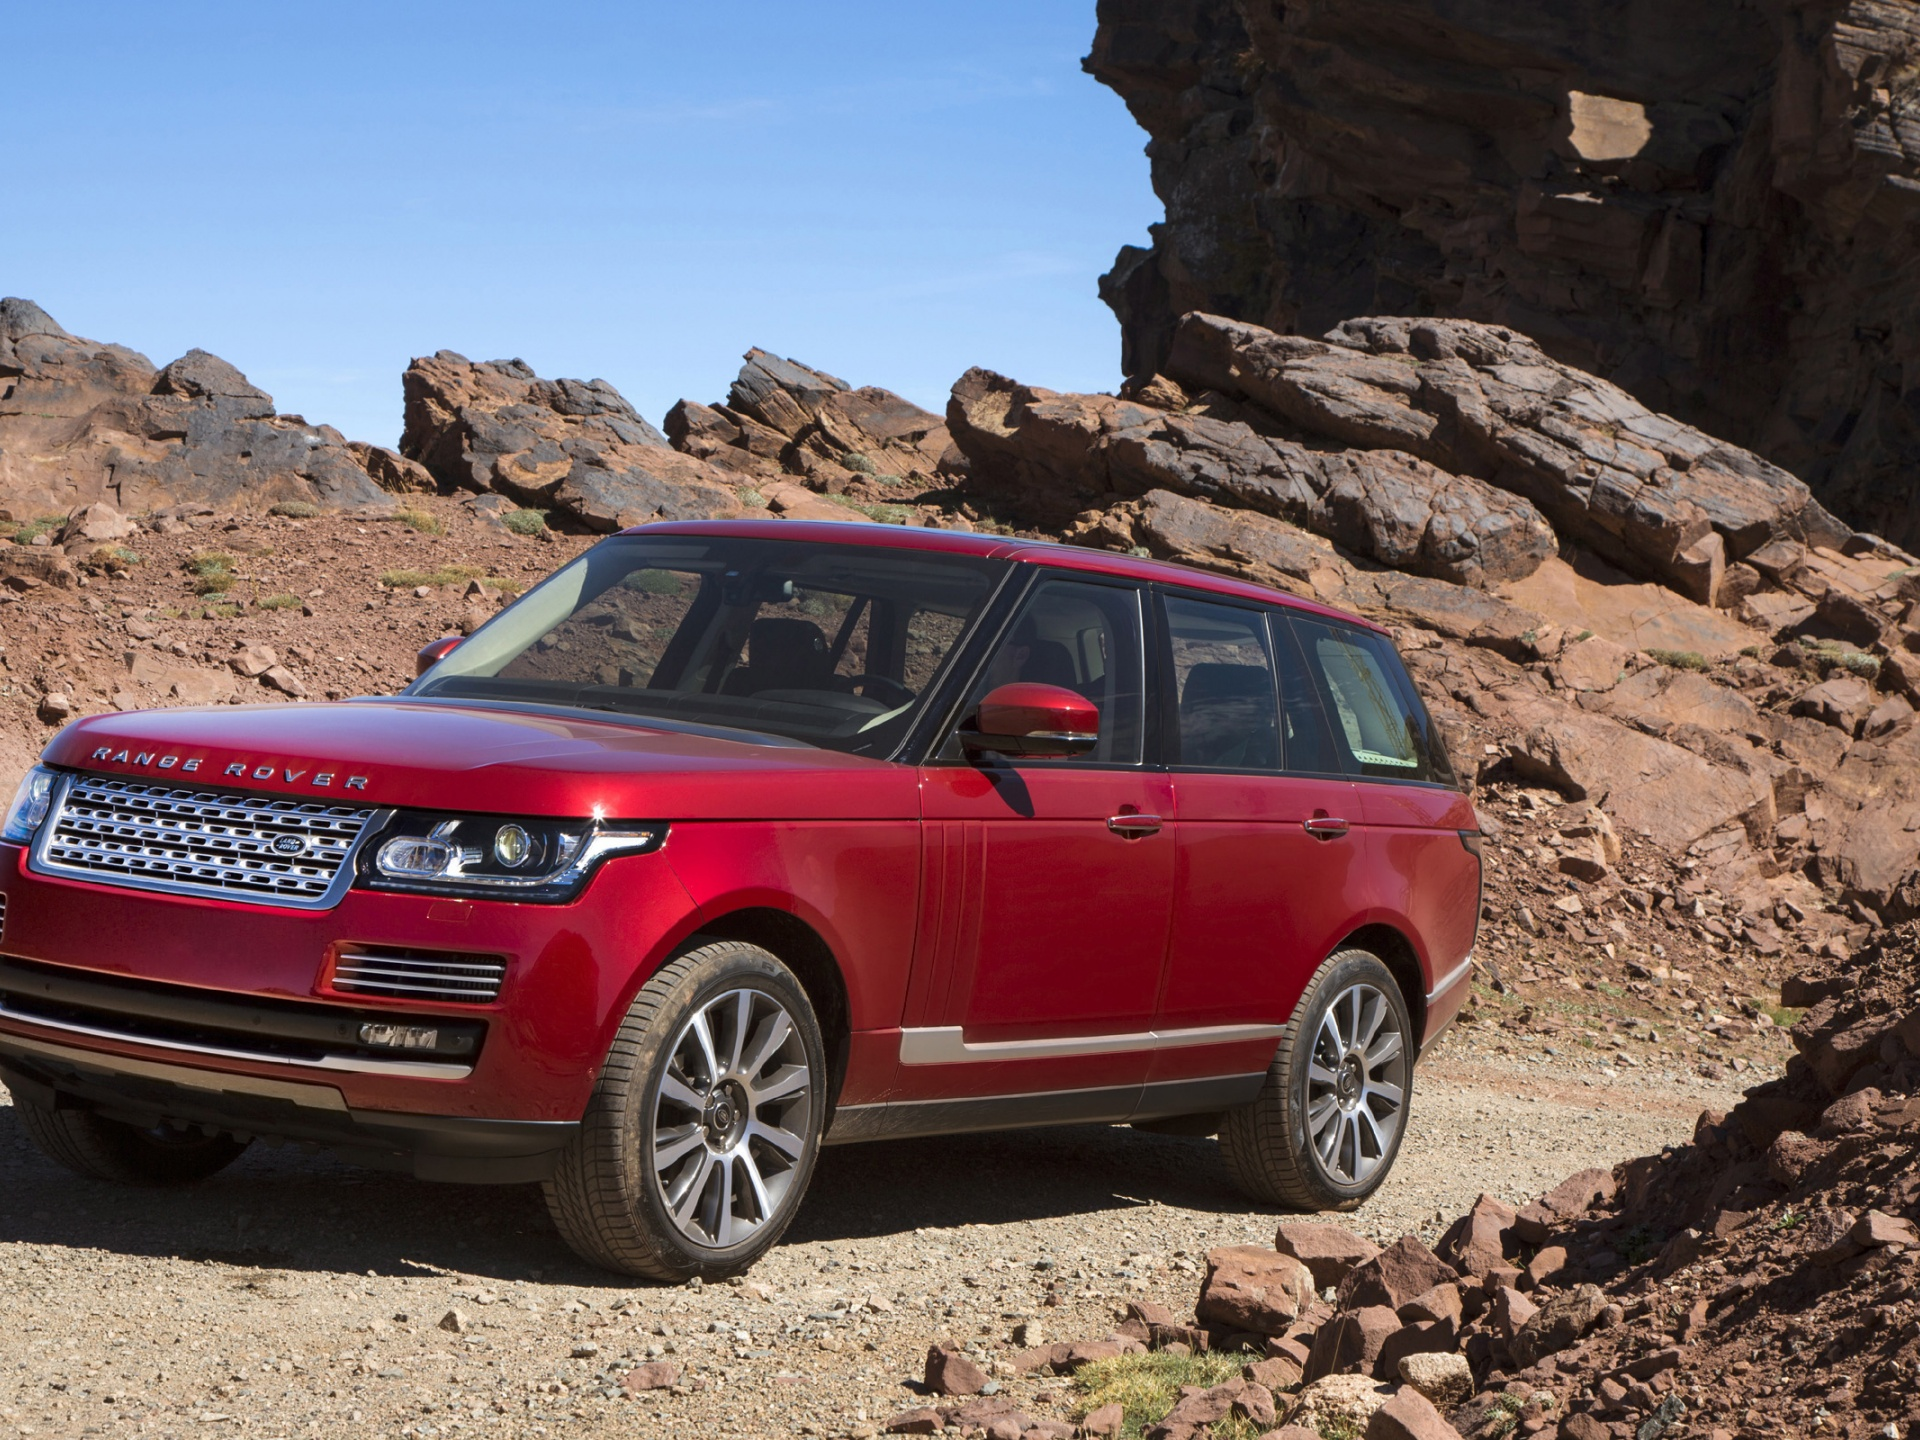 click to free download the wallpaper--Super Car Images of Land Rover Range Rover, Decent and Powerful Car on Stony Road, Great in Look 1920X1440 free wallpaper download